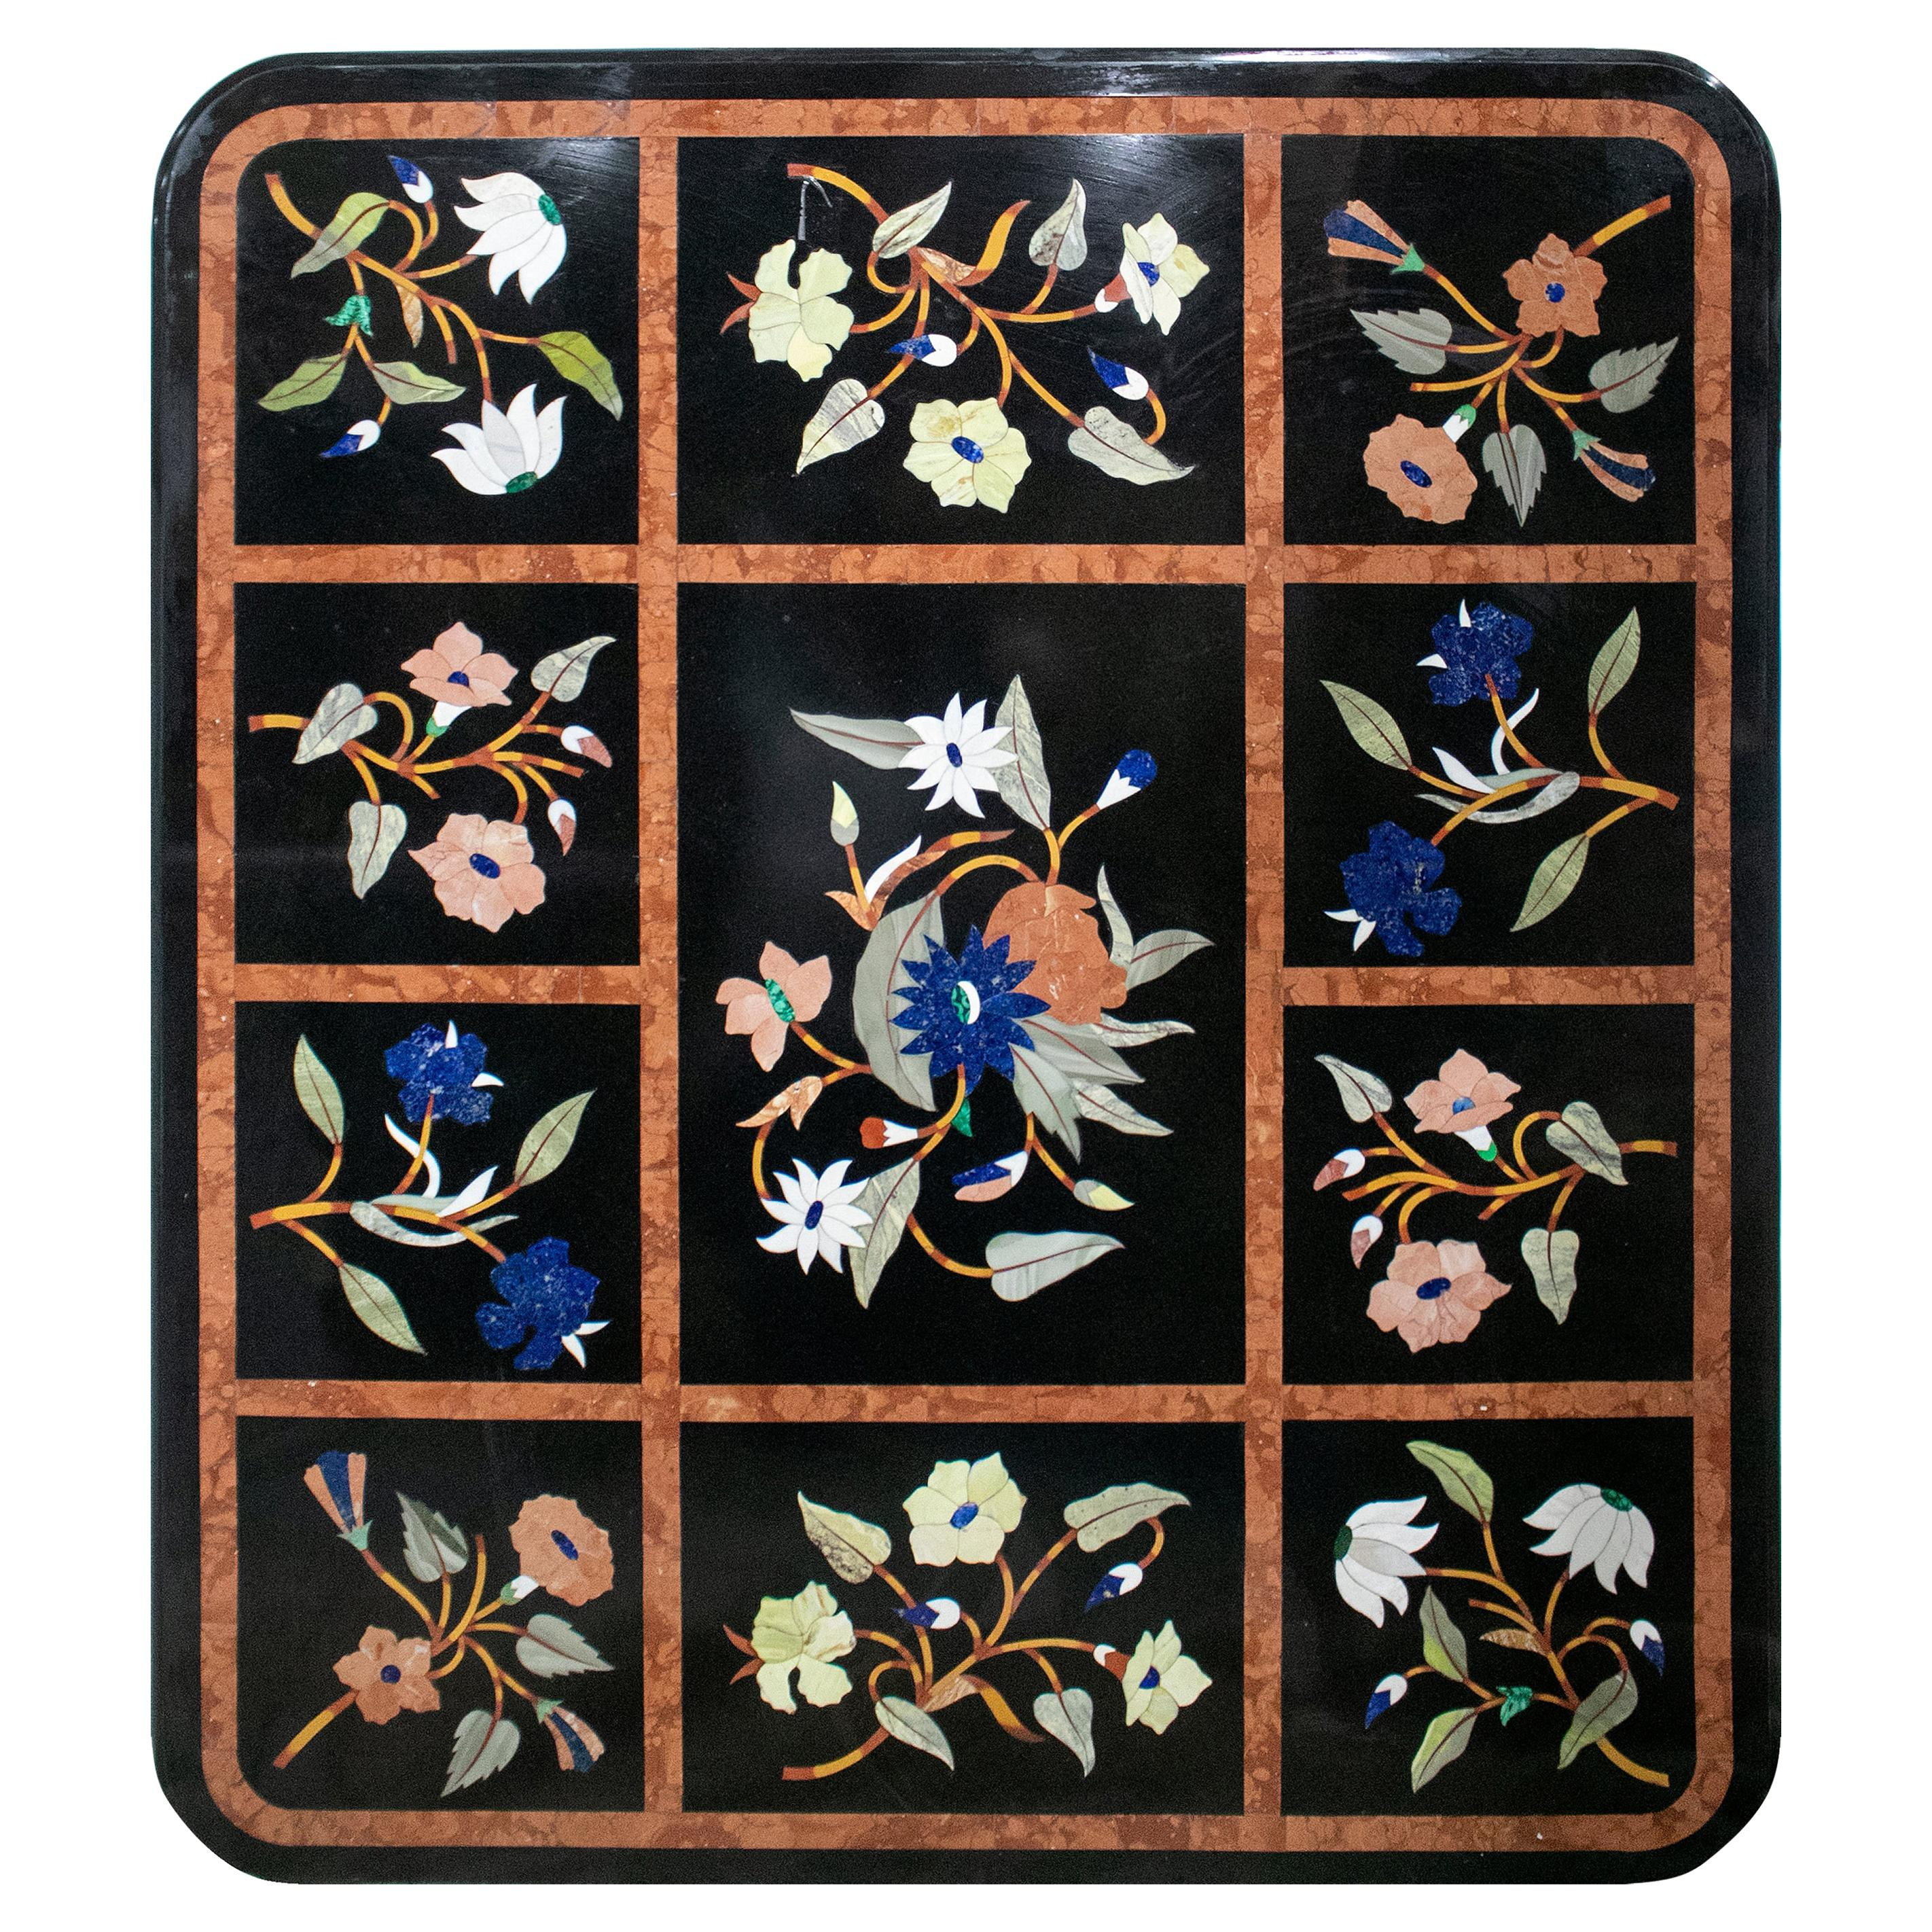 Italian Pietre Dure Inlay Stone Table Top with Ornamental Flower Decorations